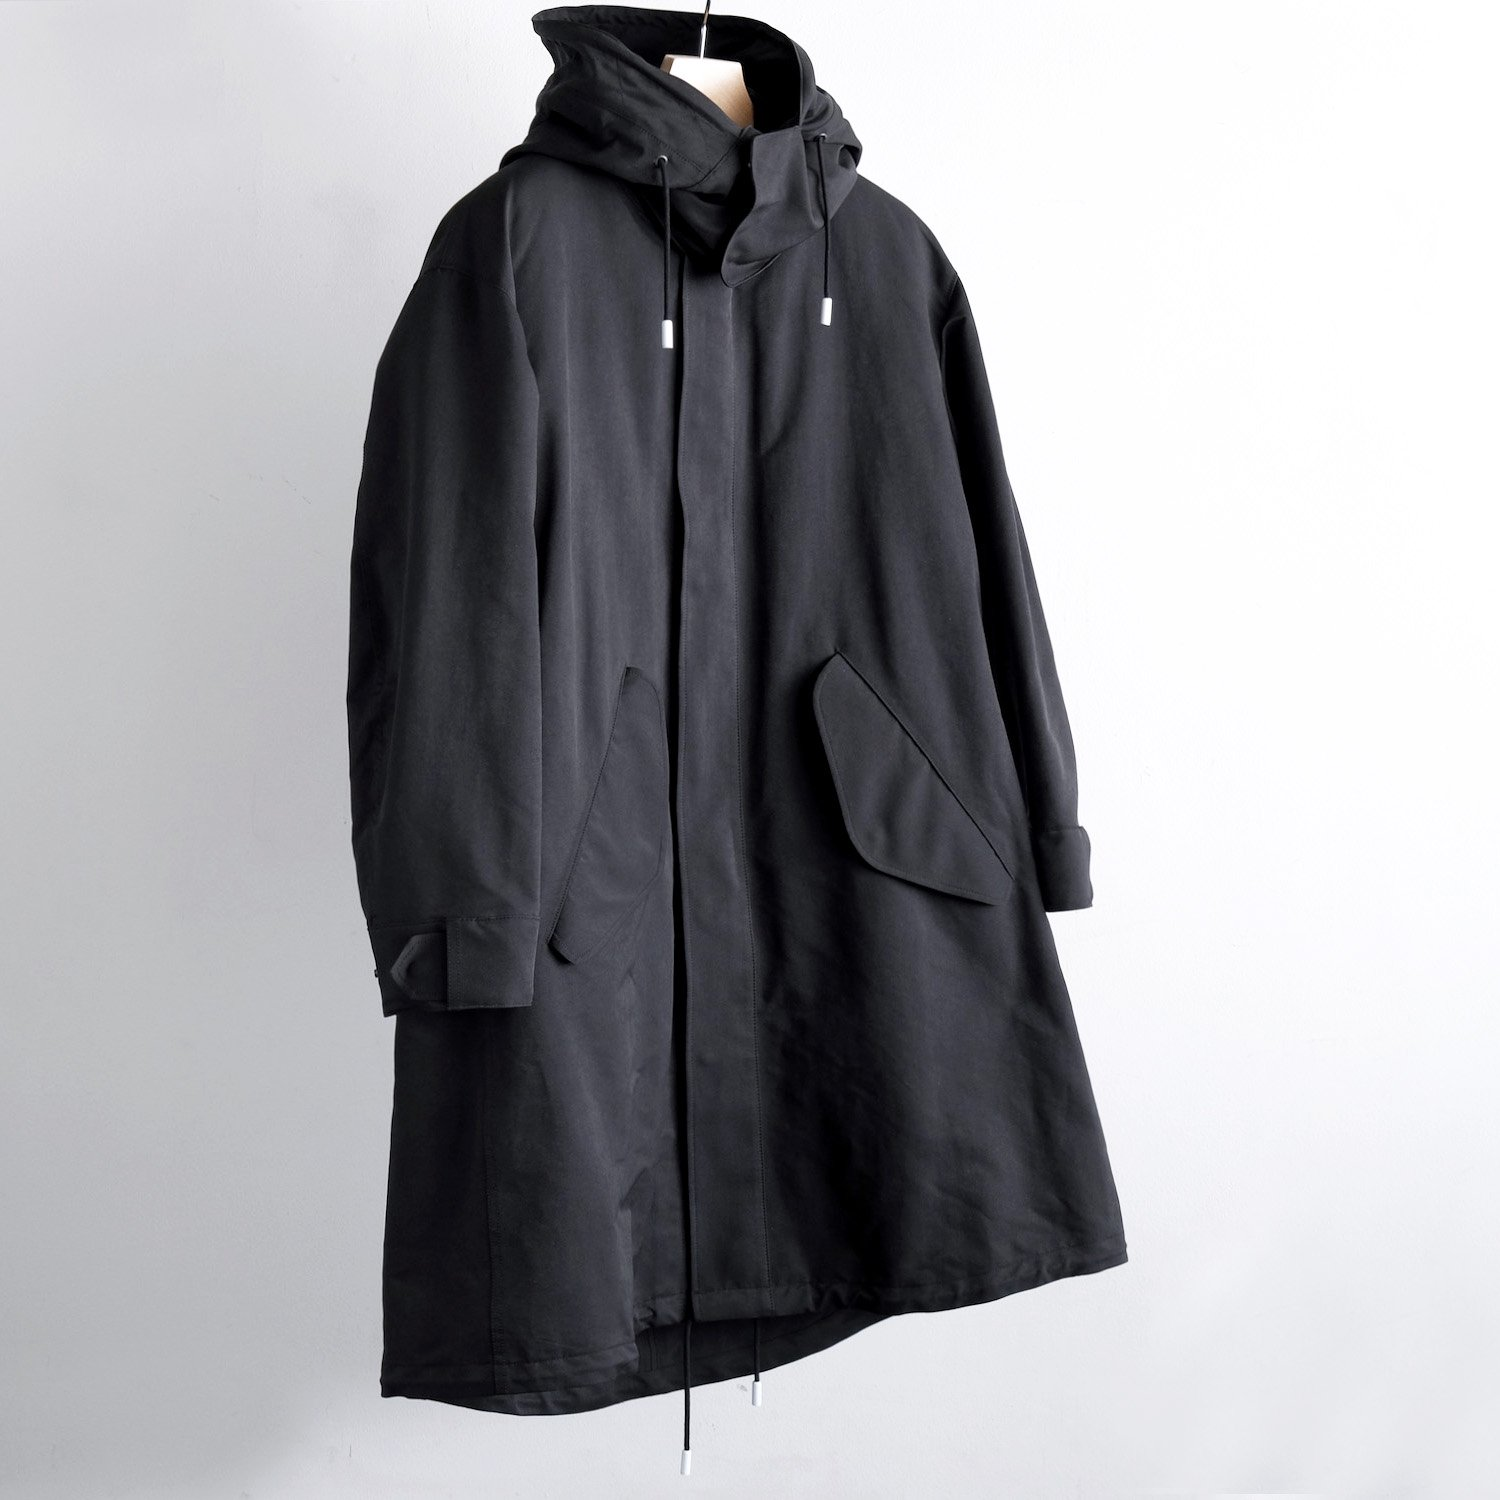 PE/NY HIGH DENSITY PEACH LONG MODS COAT with LINER [BLACK]